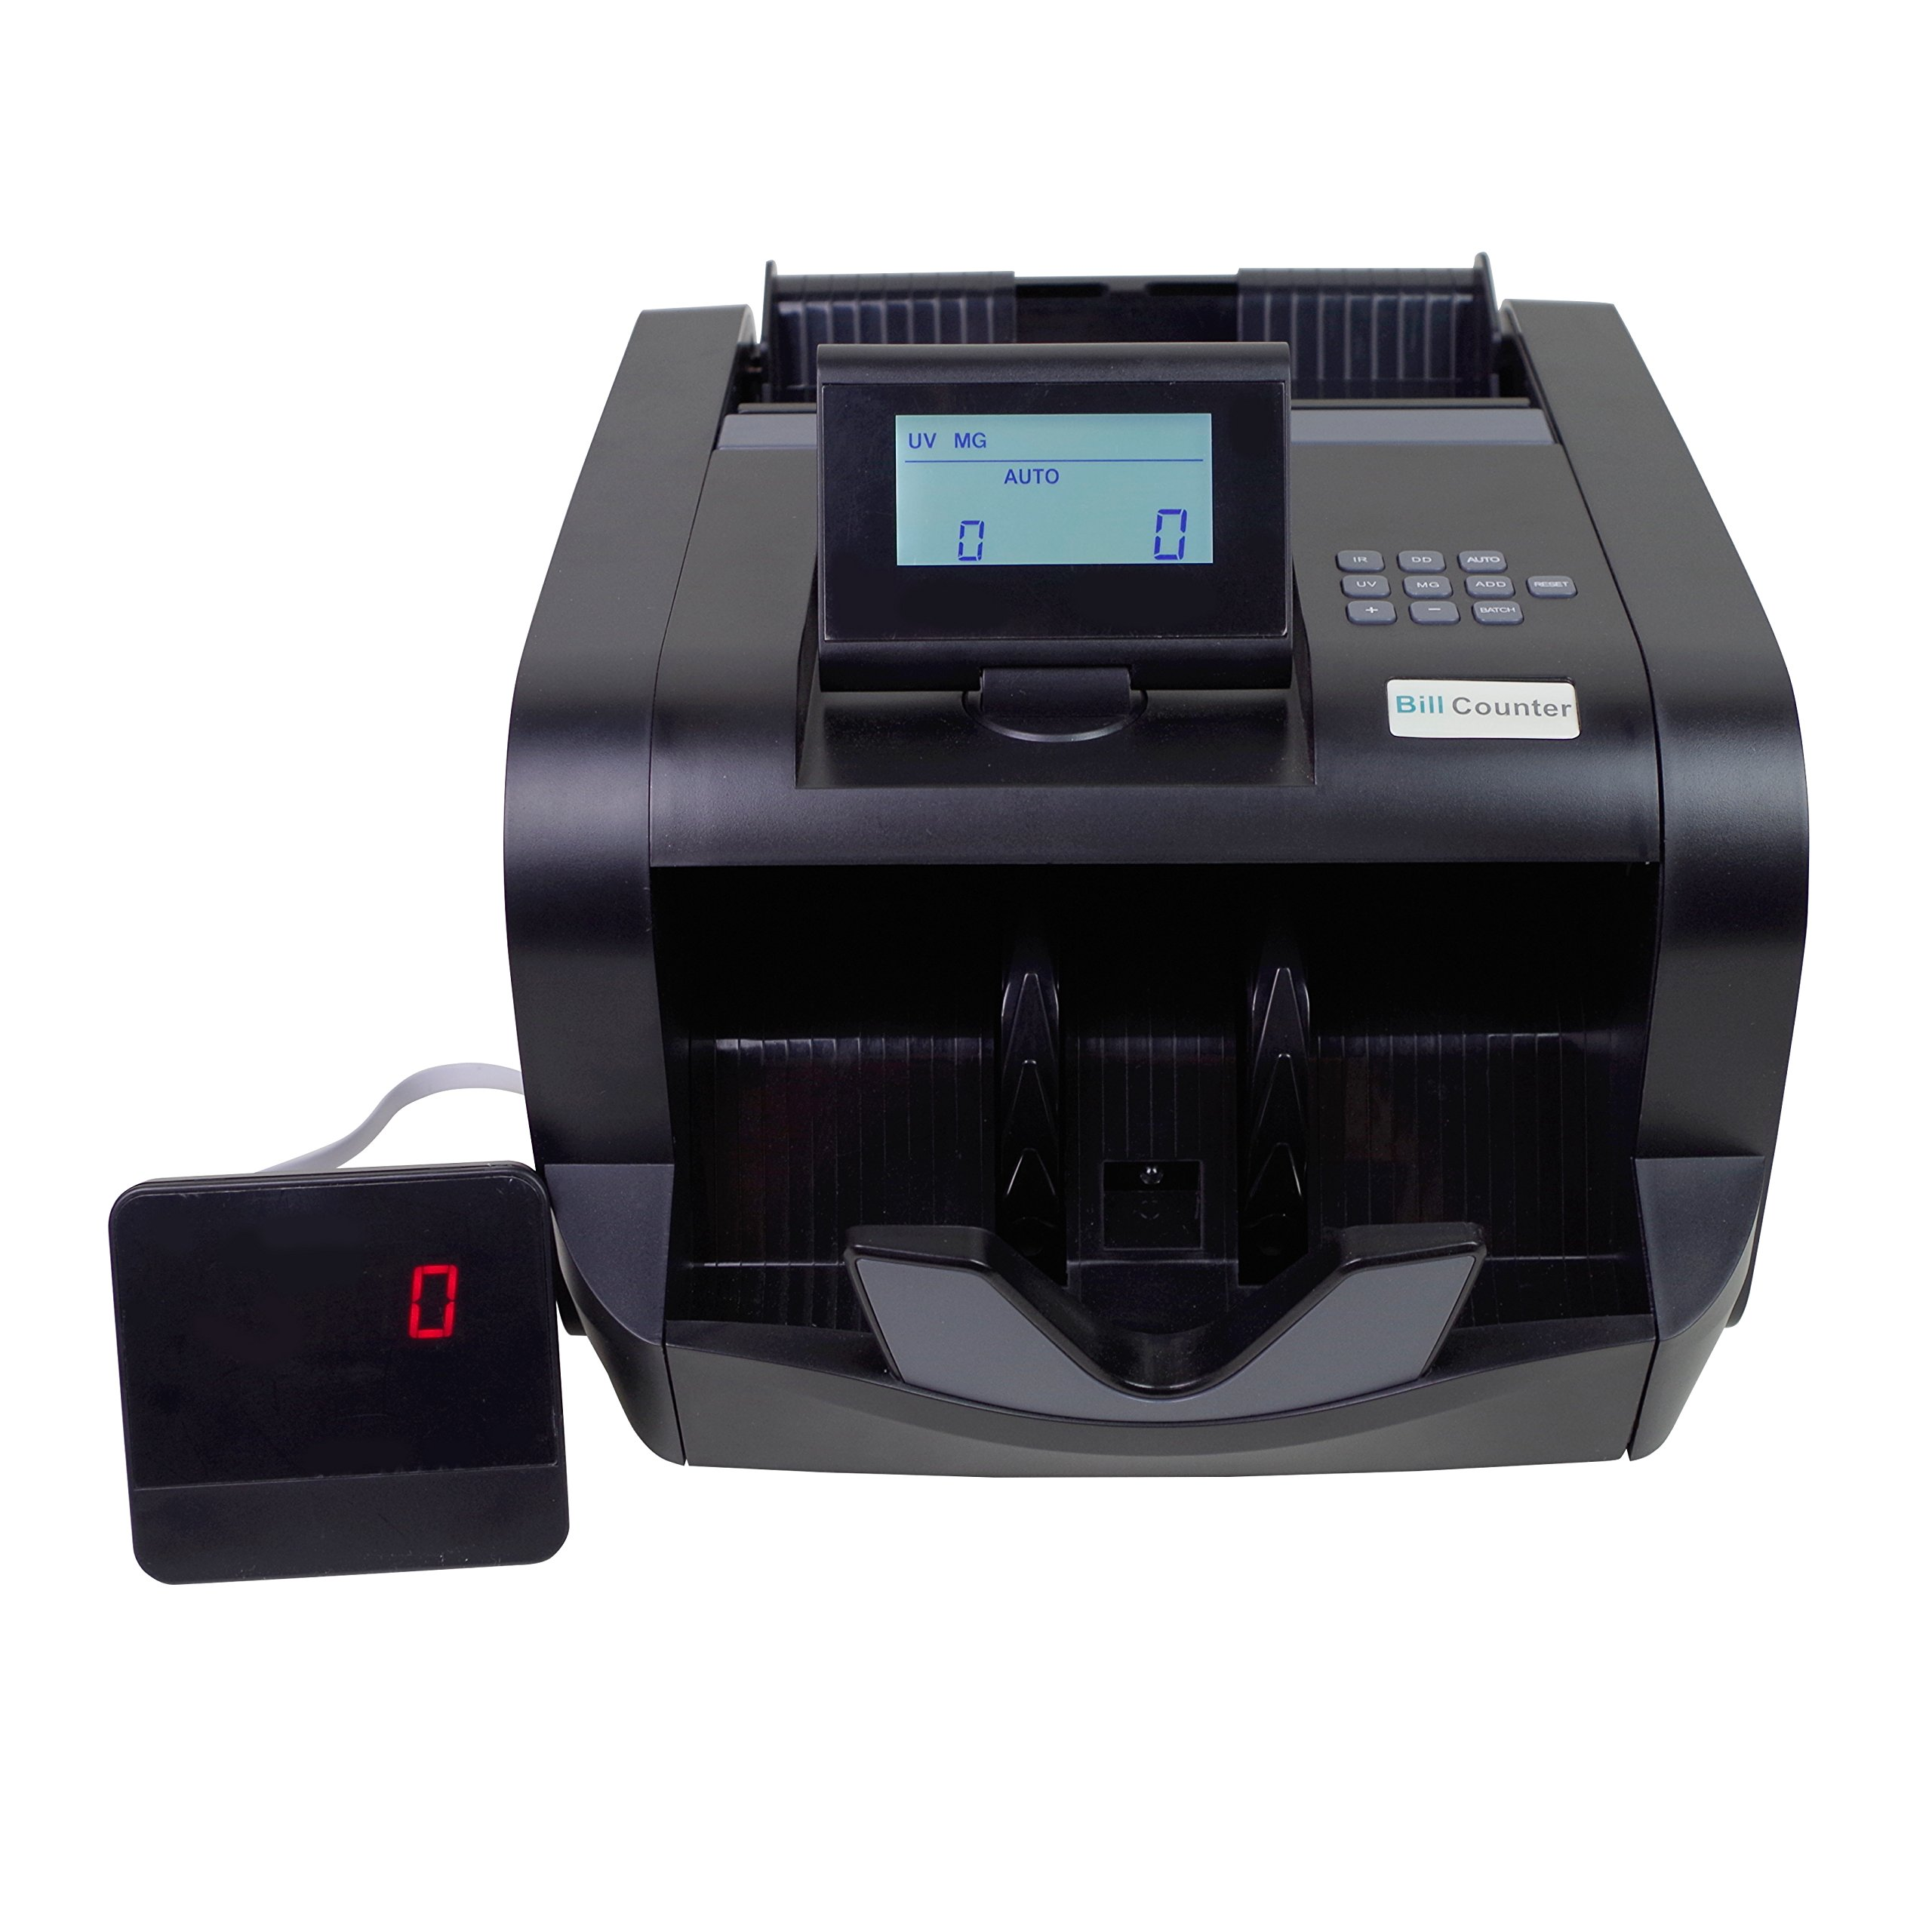 Bill Counter Black LCD Money Counting Cash Machine Counterfeit Detector UV / MG Banknote Side LCD Display By Spreezie